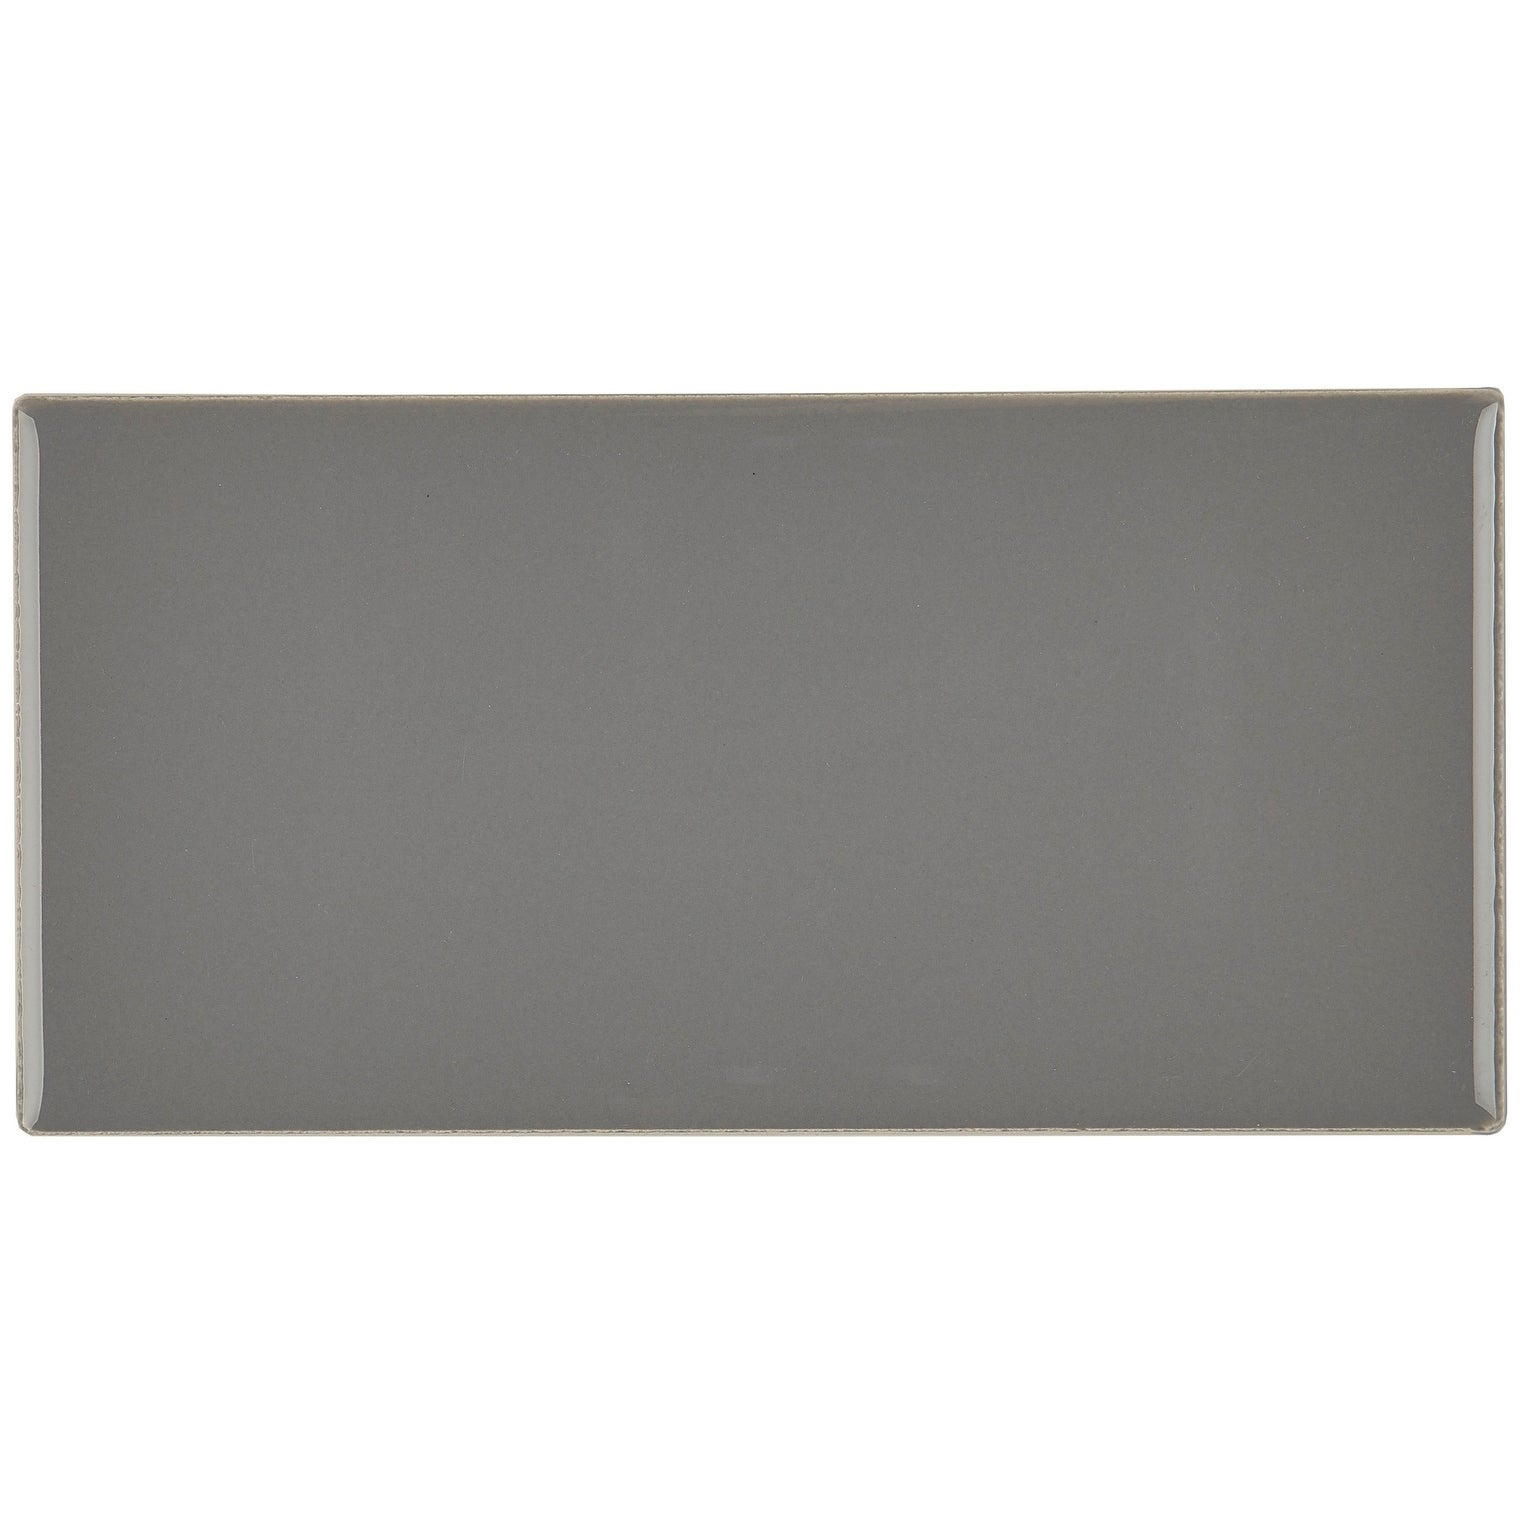 Clic Ceramic 3x6 Inch Wall Tile In Suede Gray On Free Shipping Orders Over 45 20772189